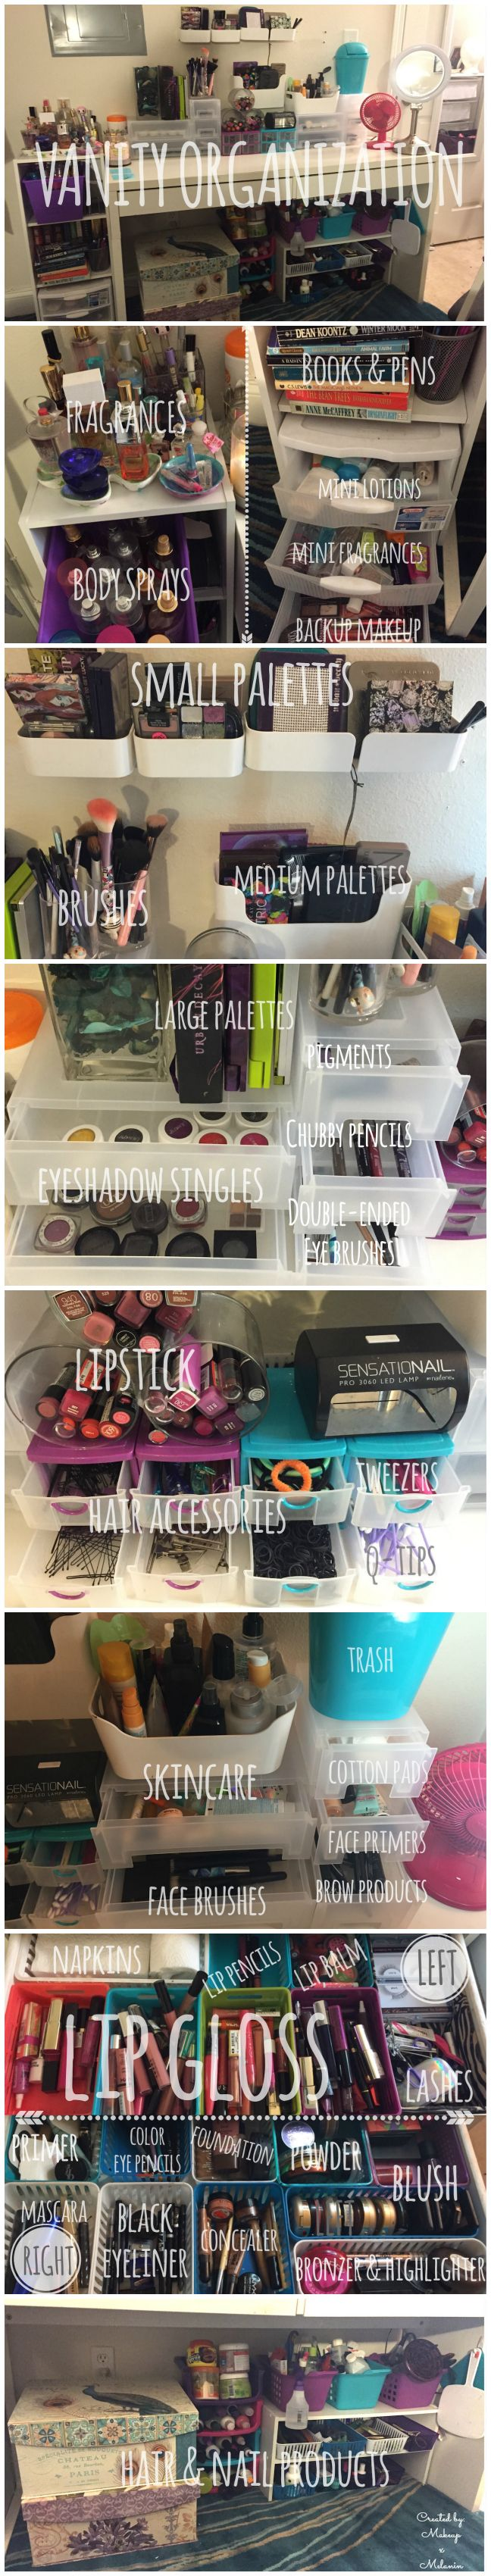 Vanity organization using items from Ikea, Target and Dollar Tree.